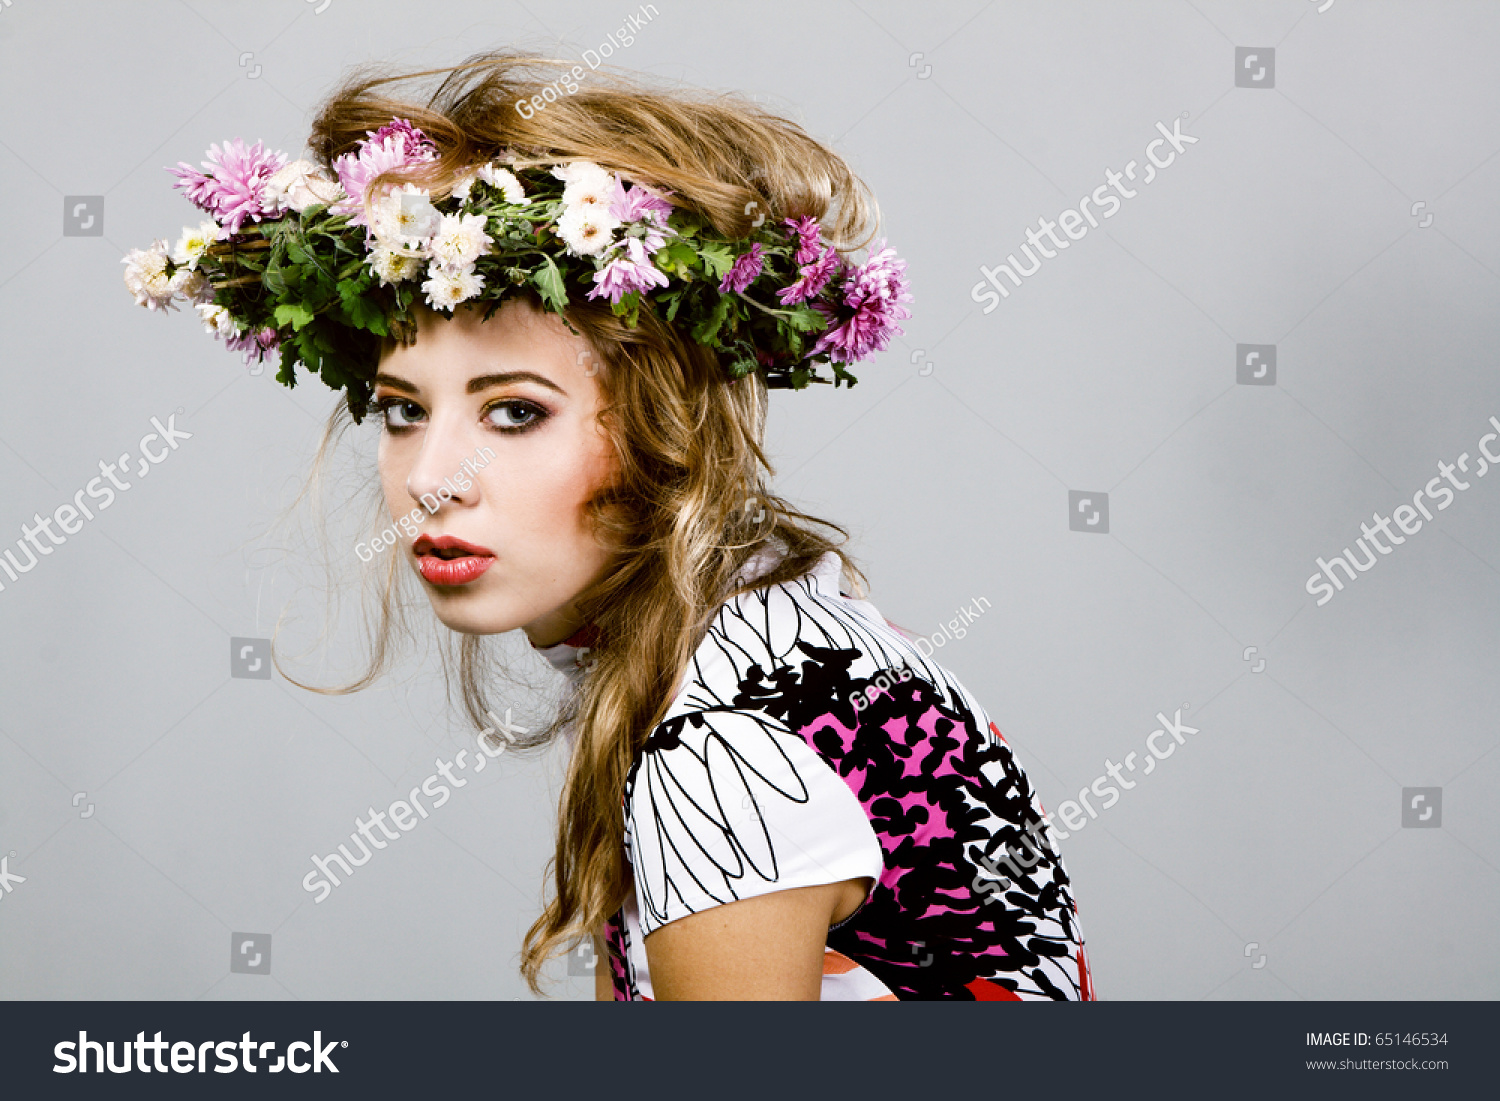 Portrait beautiful fashion model flower crown stock photo edit now portrait of a beautiful fashion model in flower crown izmirmasajfo